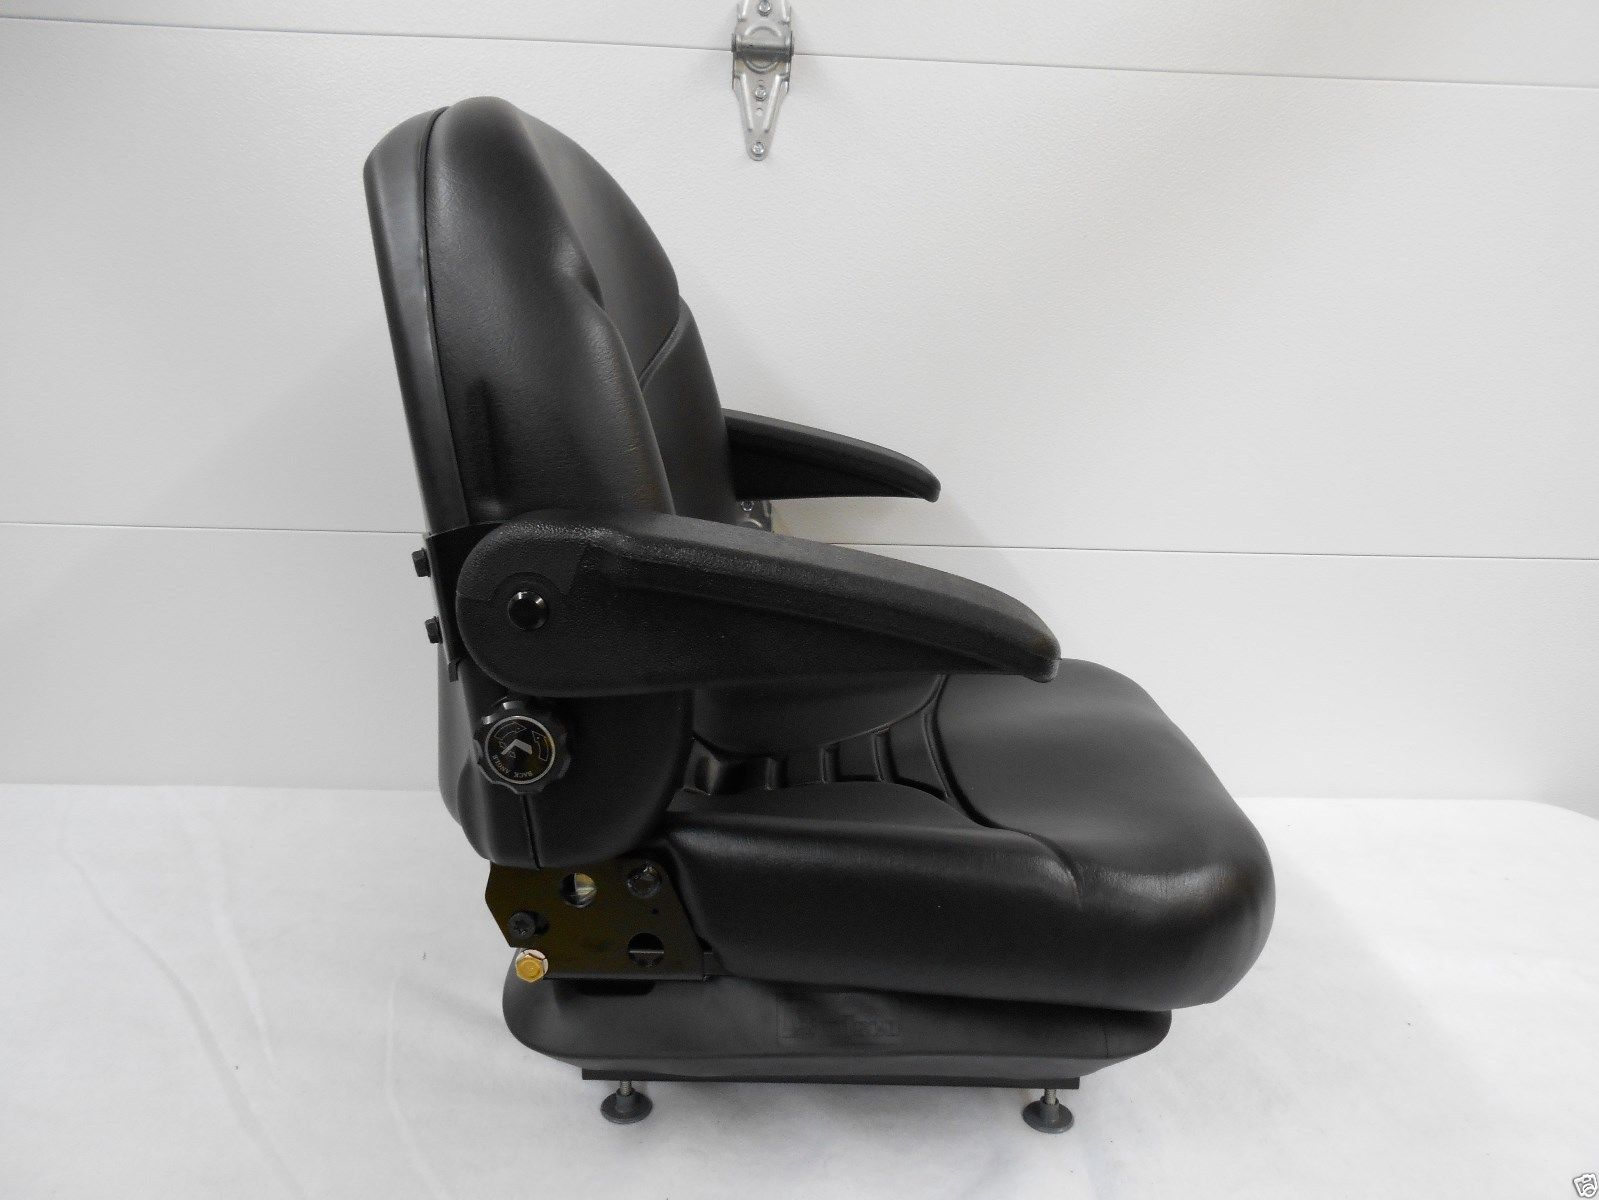 Michigan Black Seat Milsco V5300 High Back Suspension